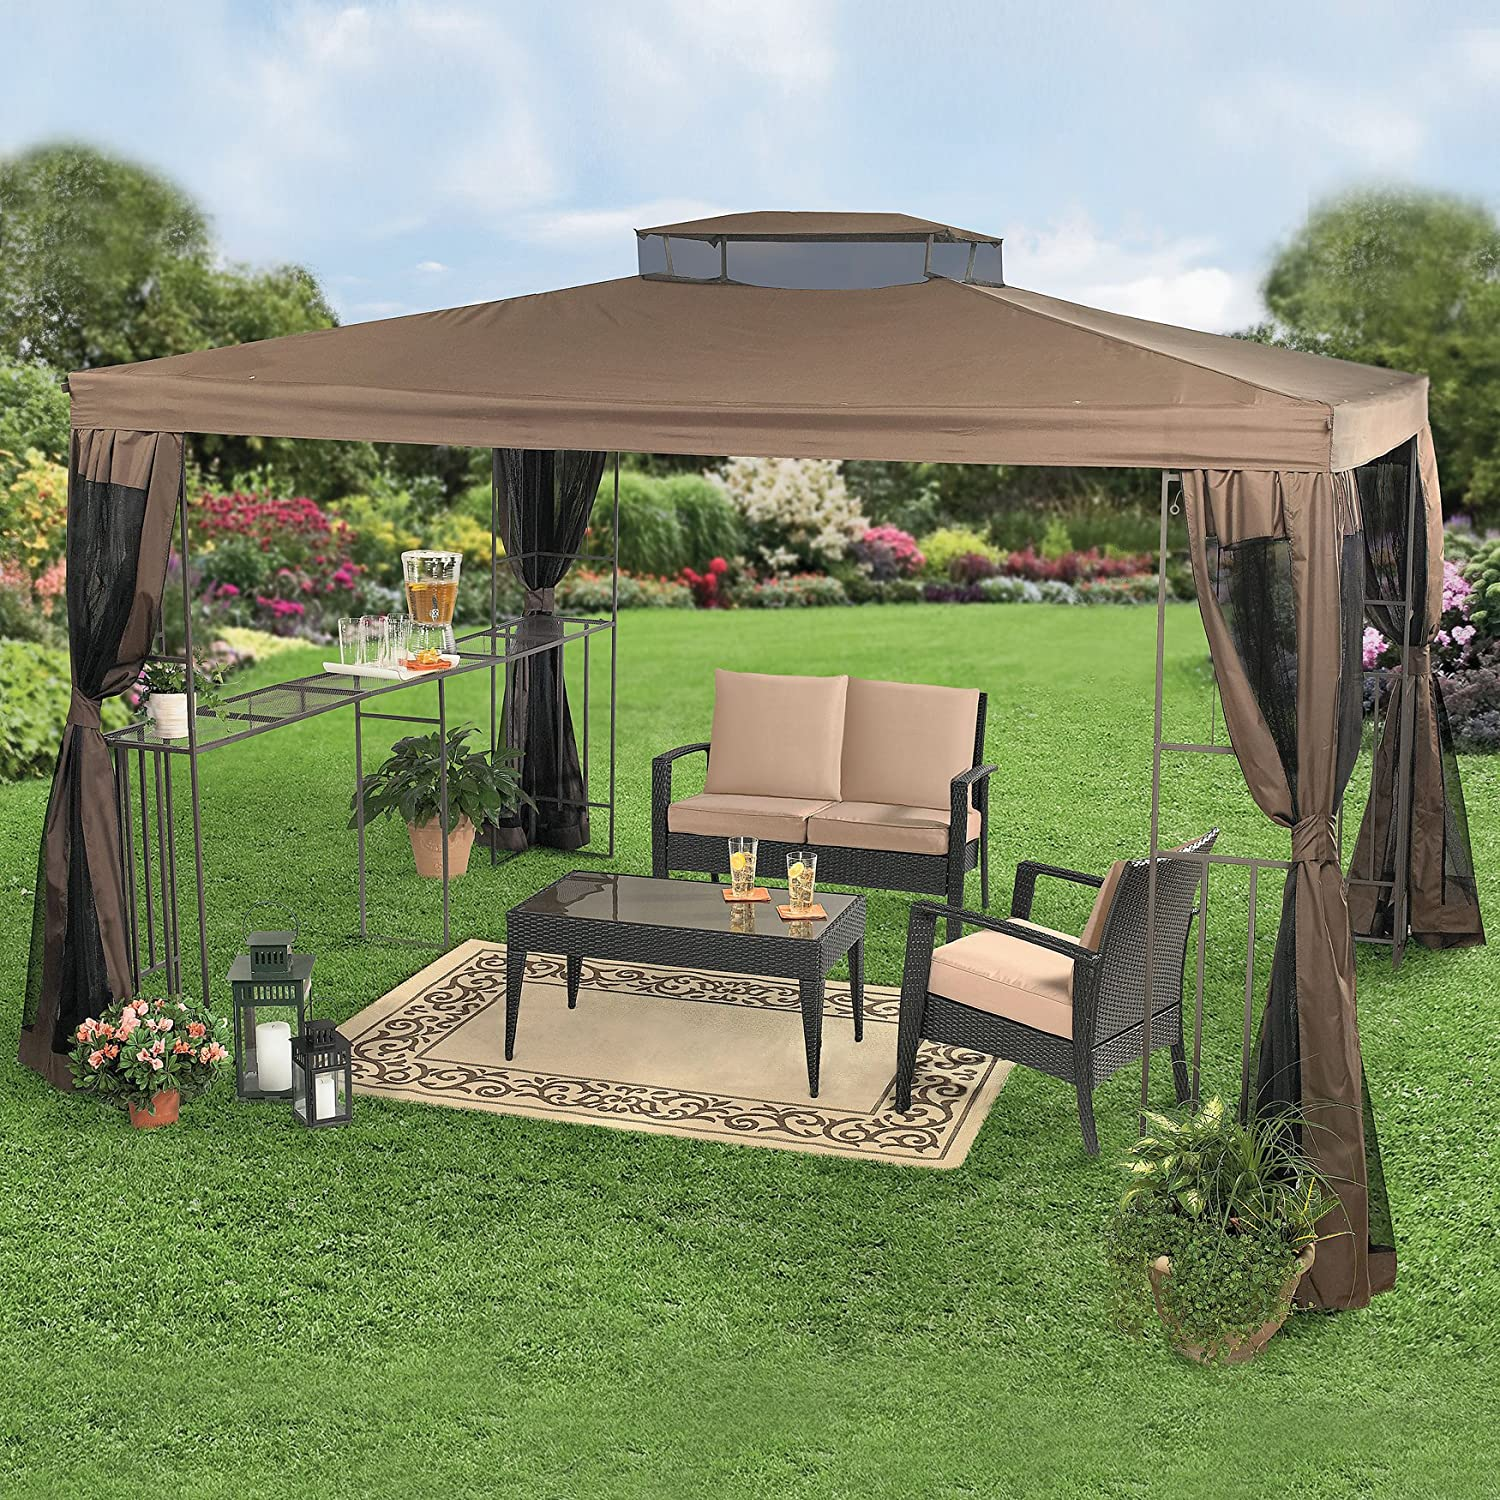 Gazebo Canopy Ideas : Home and Garden Design Ideas Beautiful Rectangular Gazebo With Bar